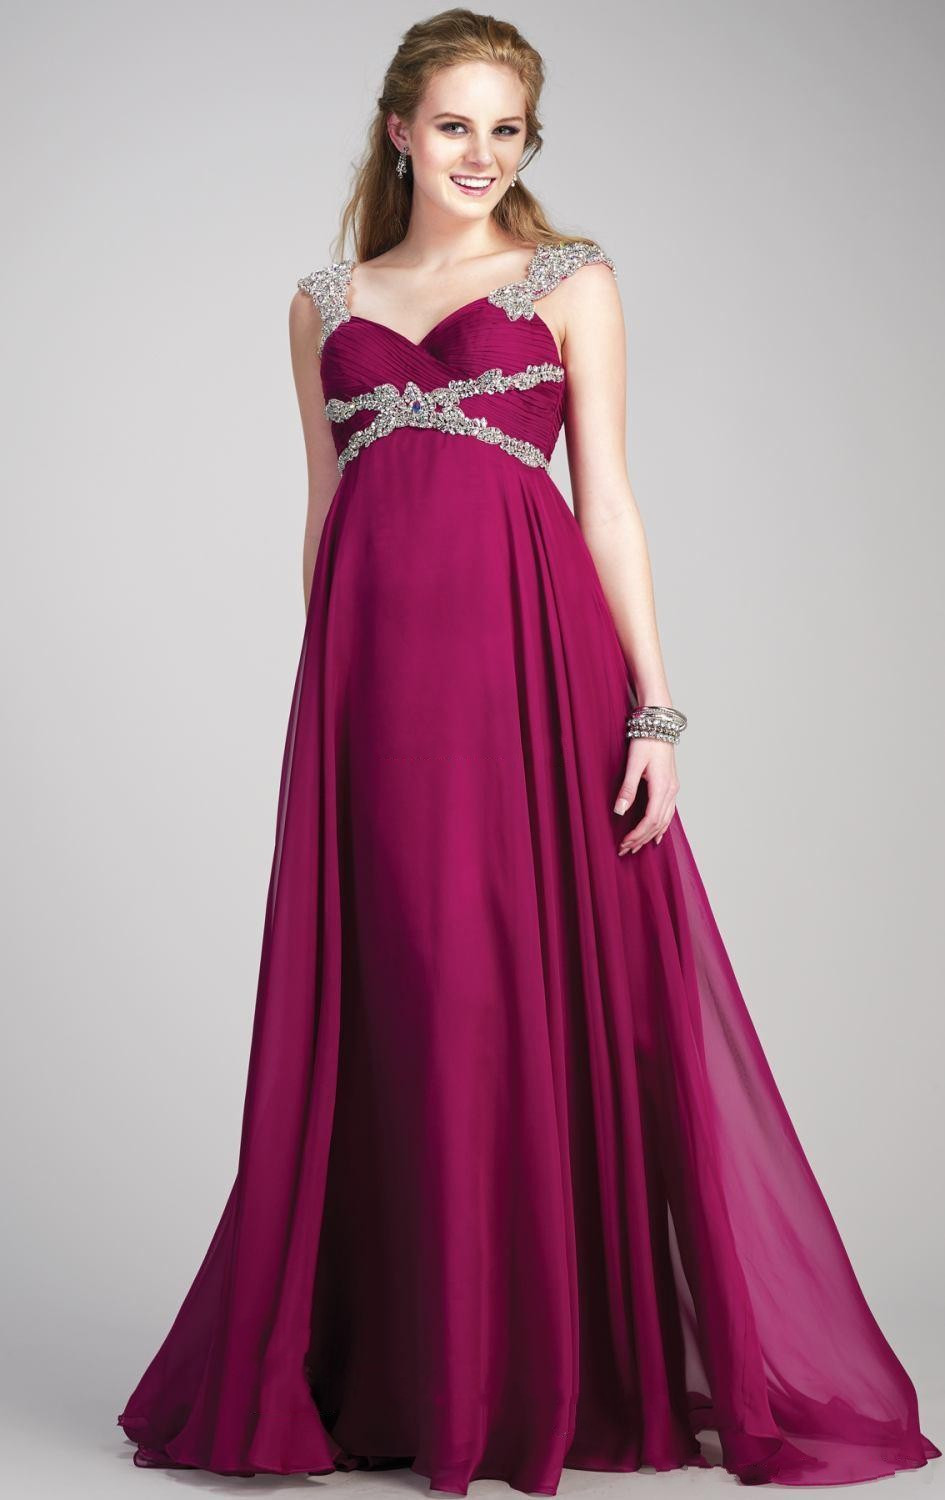 Plus size maternity formal dresses fashion dresses plus size maternity formal dresses ombrellifo Image collections